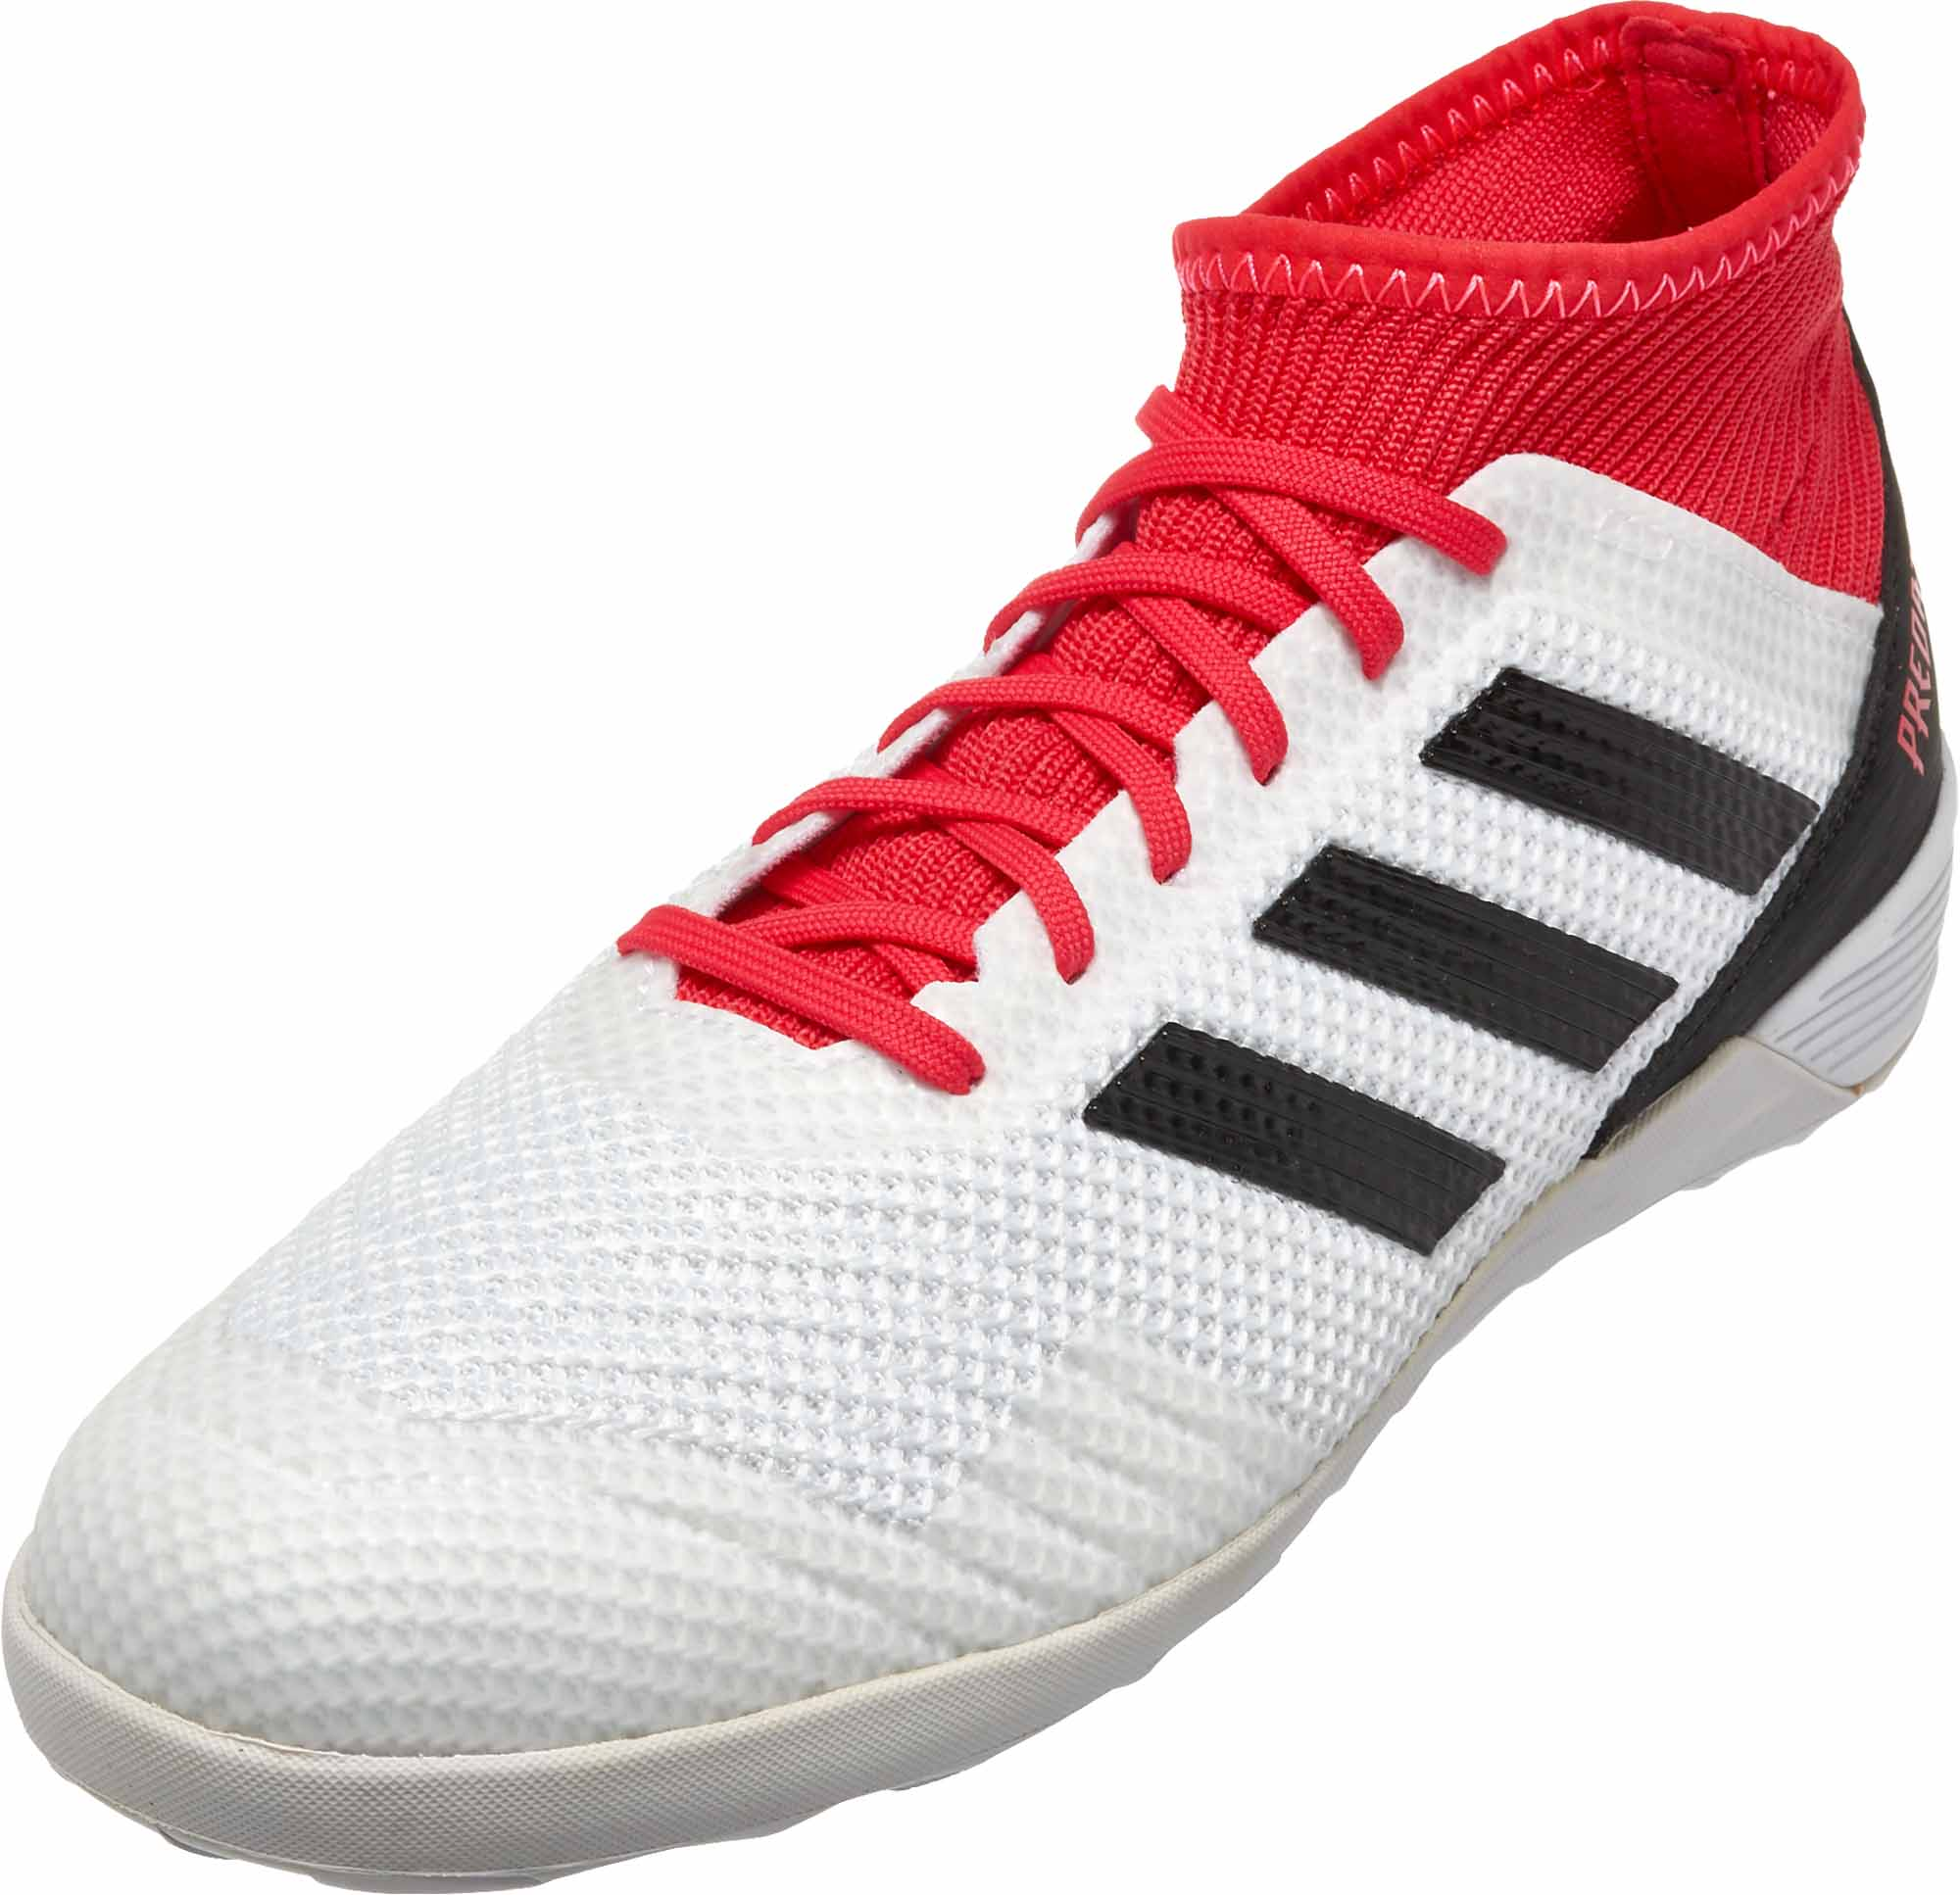 87deb69d5d83 adidas Predator Tango 18.3 IN - White Indoor Shoes